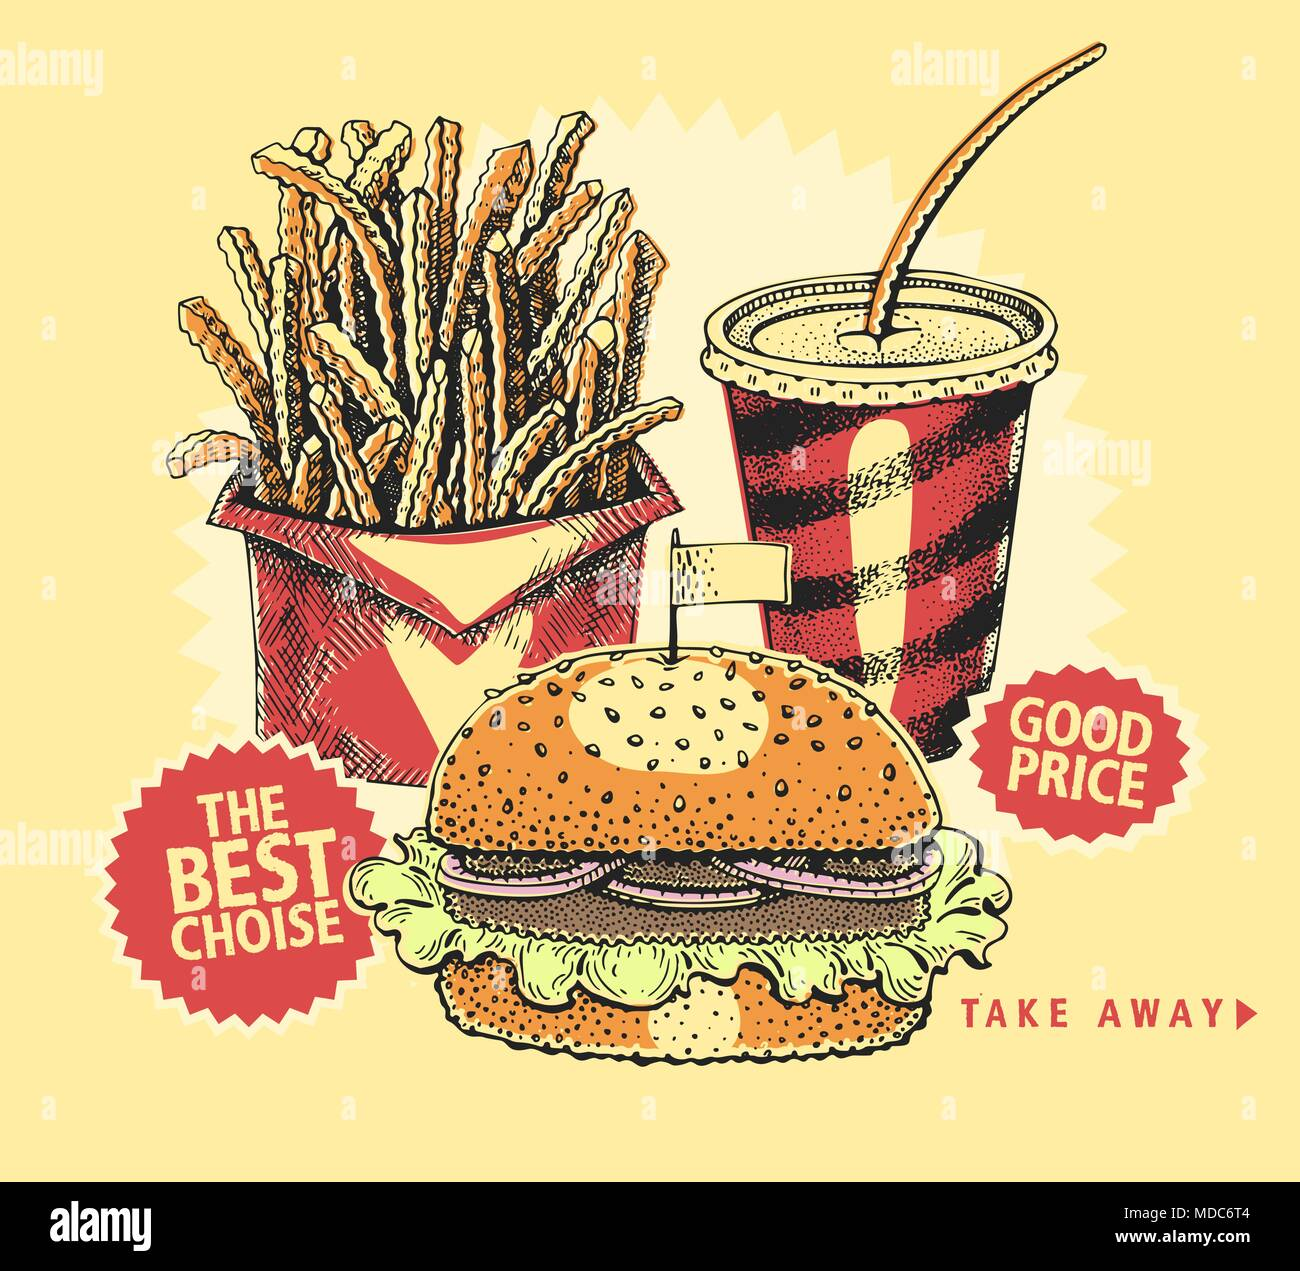 backgrounds with a hamburger, french fries, and cola. sketch style